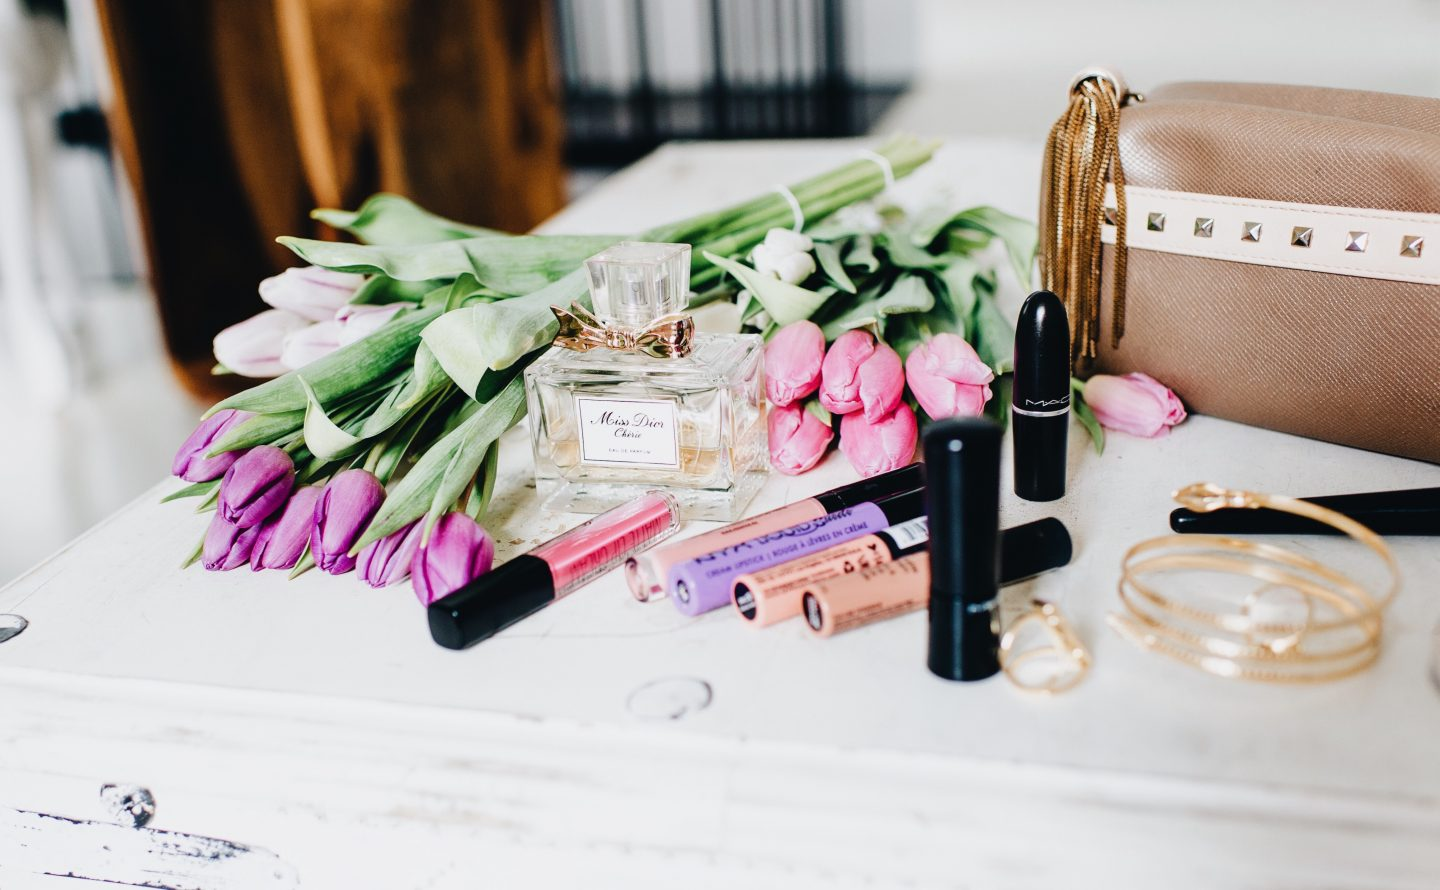 Beauty – getting ready for spring